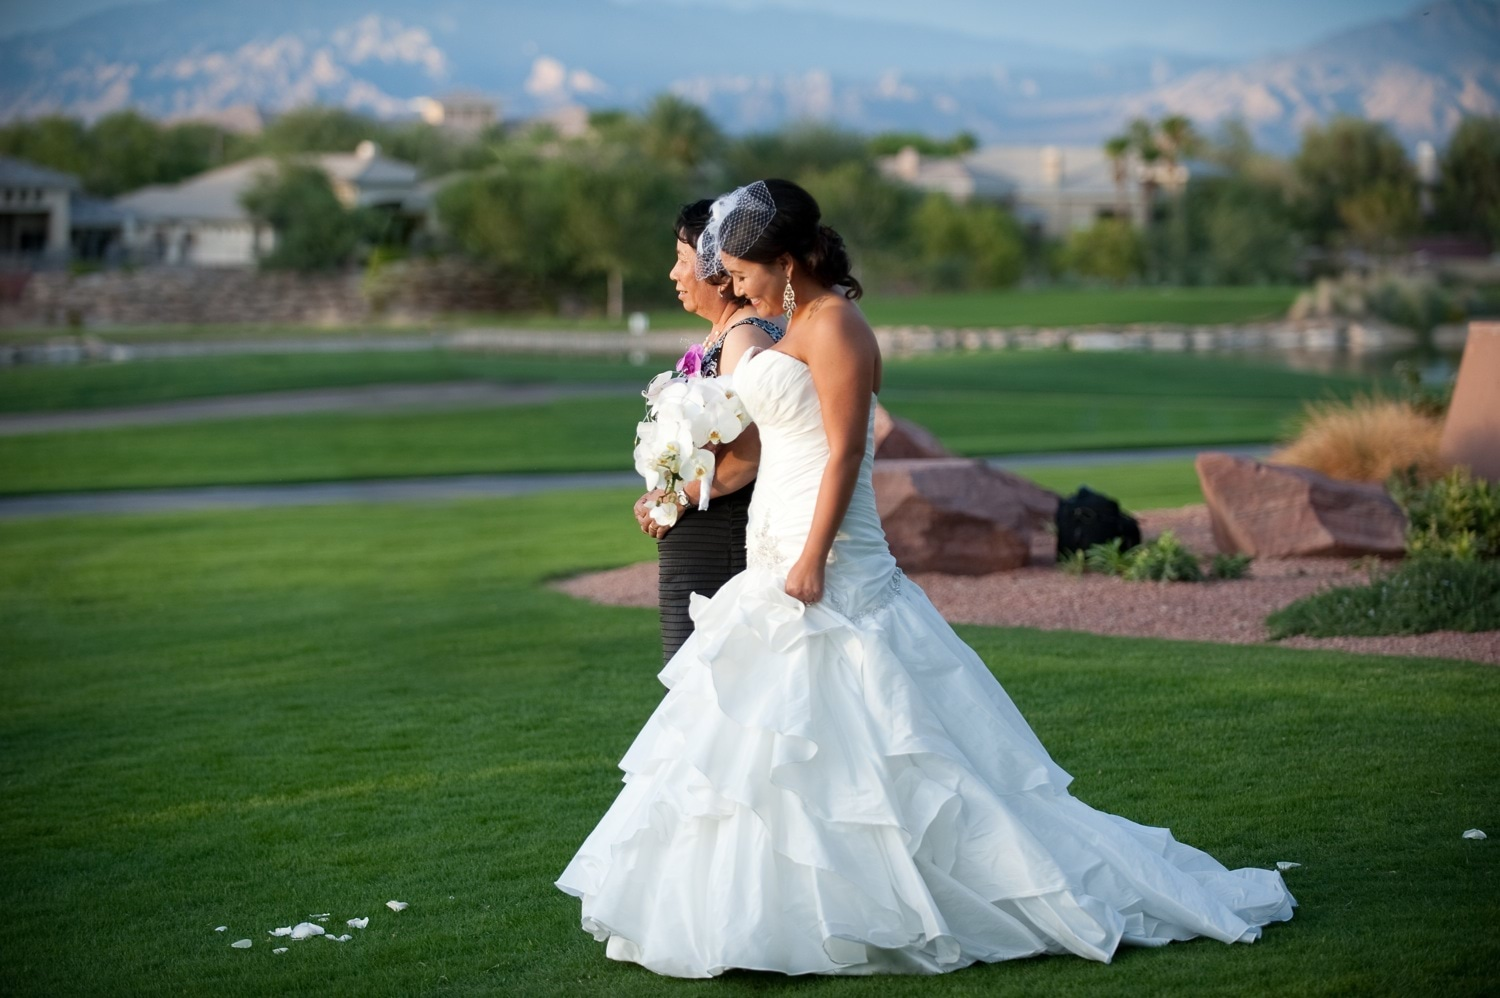 real-weddings-las-vegas-outdoor-ceremony-white-wedding-dress